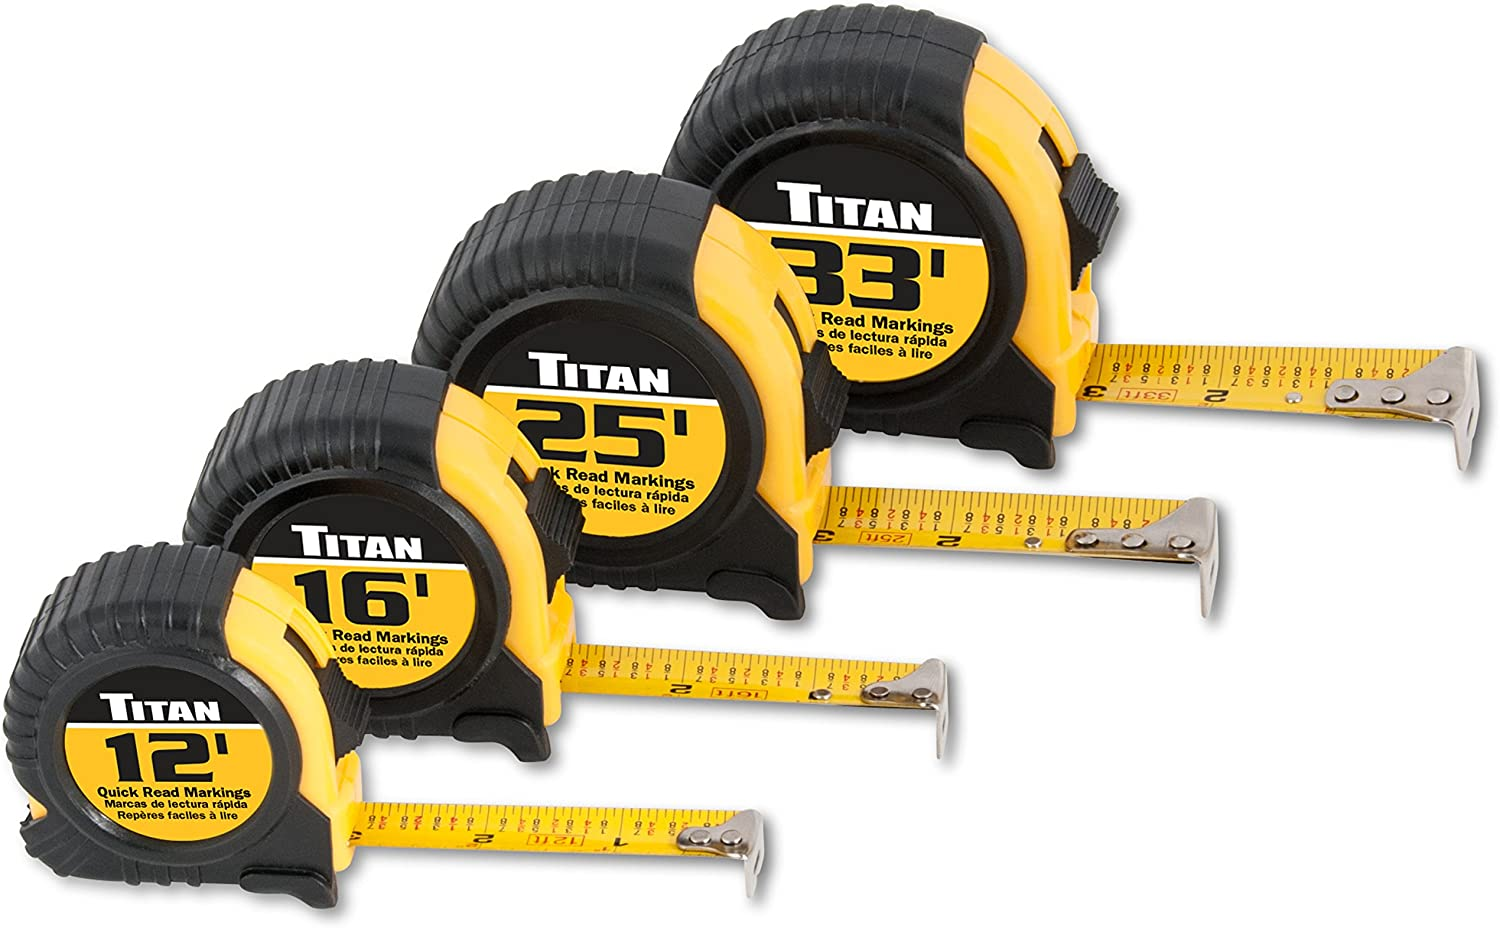 Titan 10902 4-Piece Tape Measure Set (12', 16', 25' and 33') : Everything Else